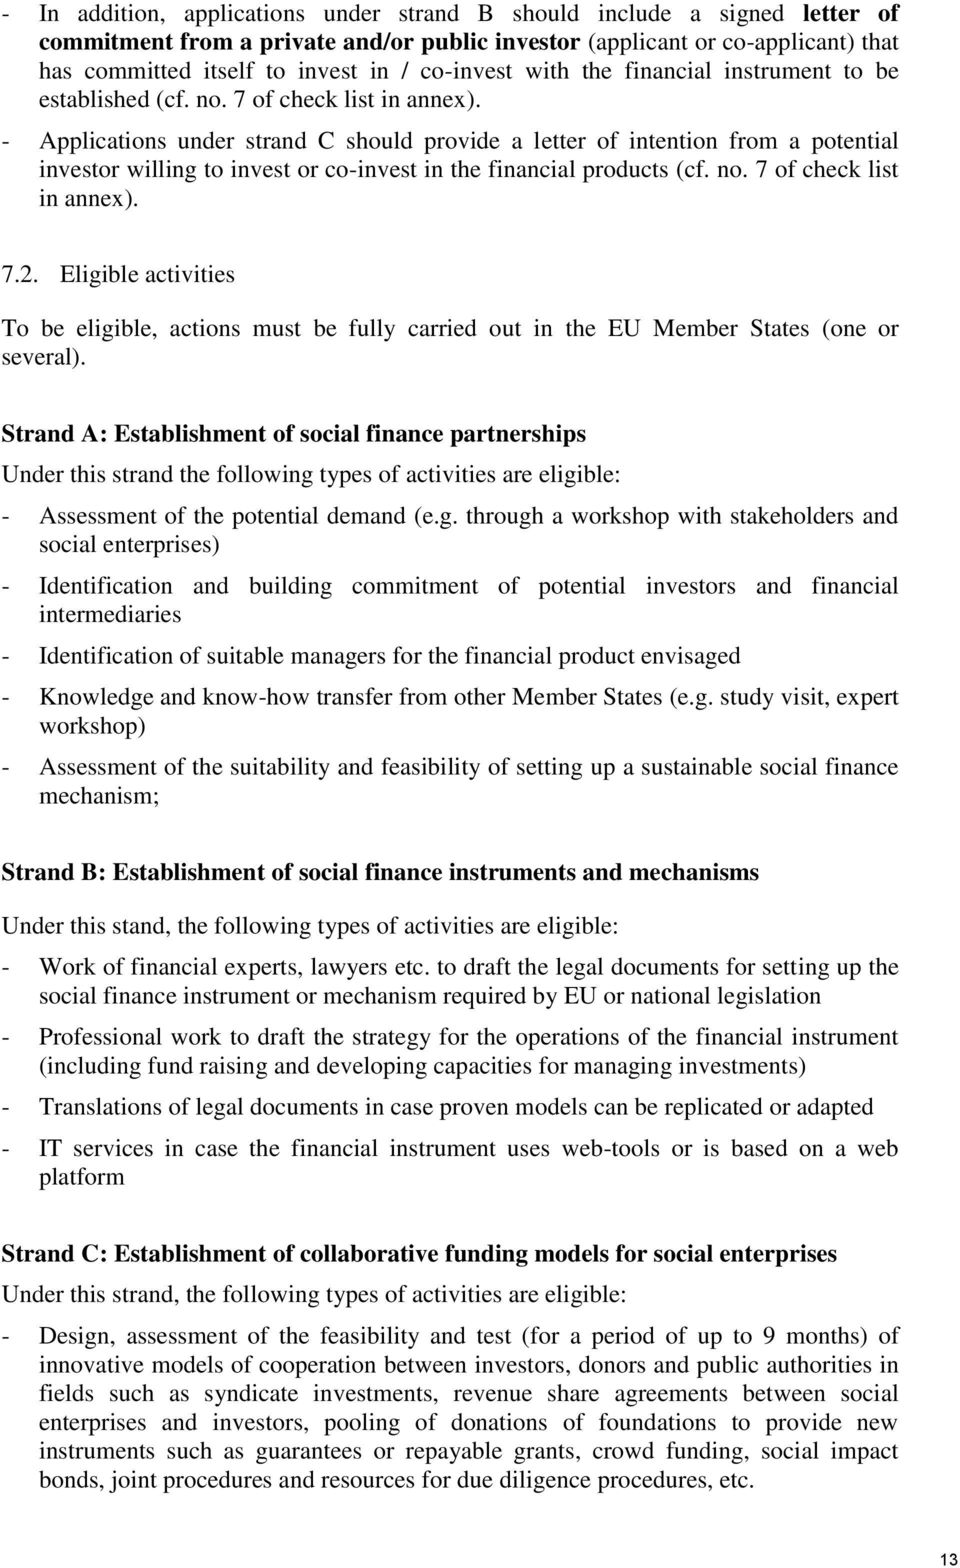 - Applications under strand C should provide a letter of intention from a potential investor willing to invest or co-invest in the financial products (cf. no. 7 of check list in annex). 7.2.